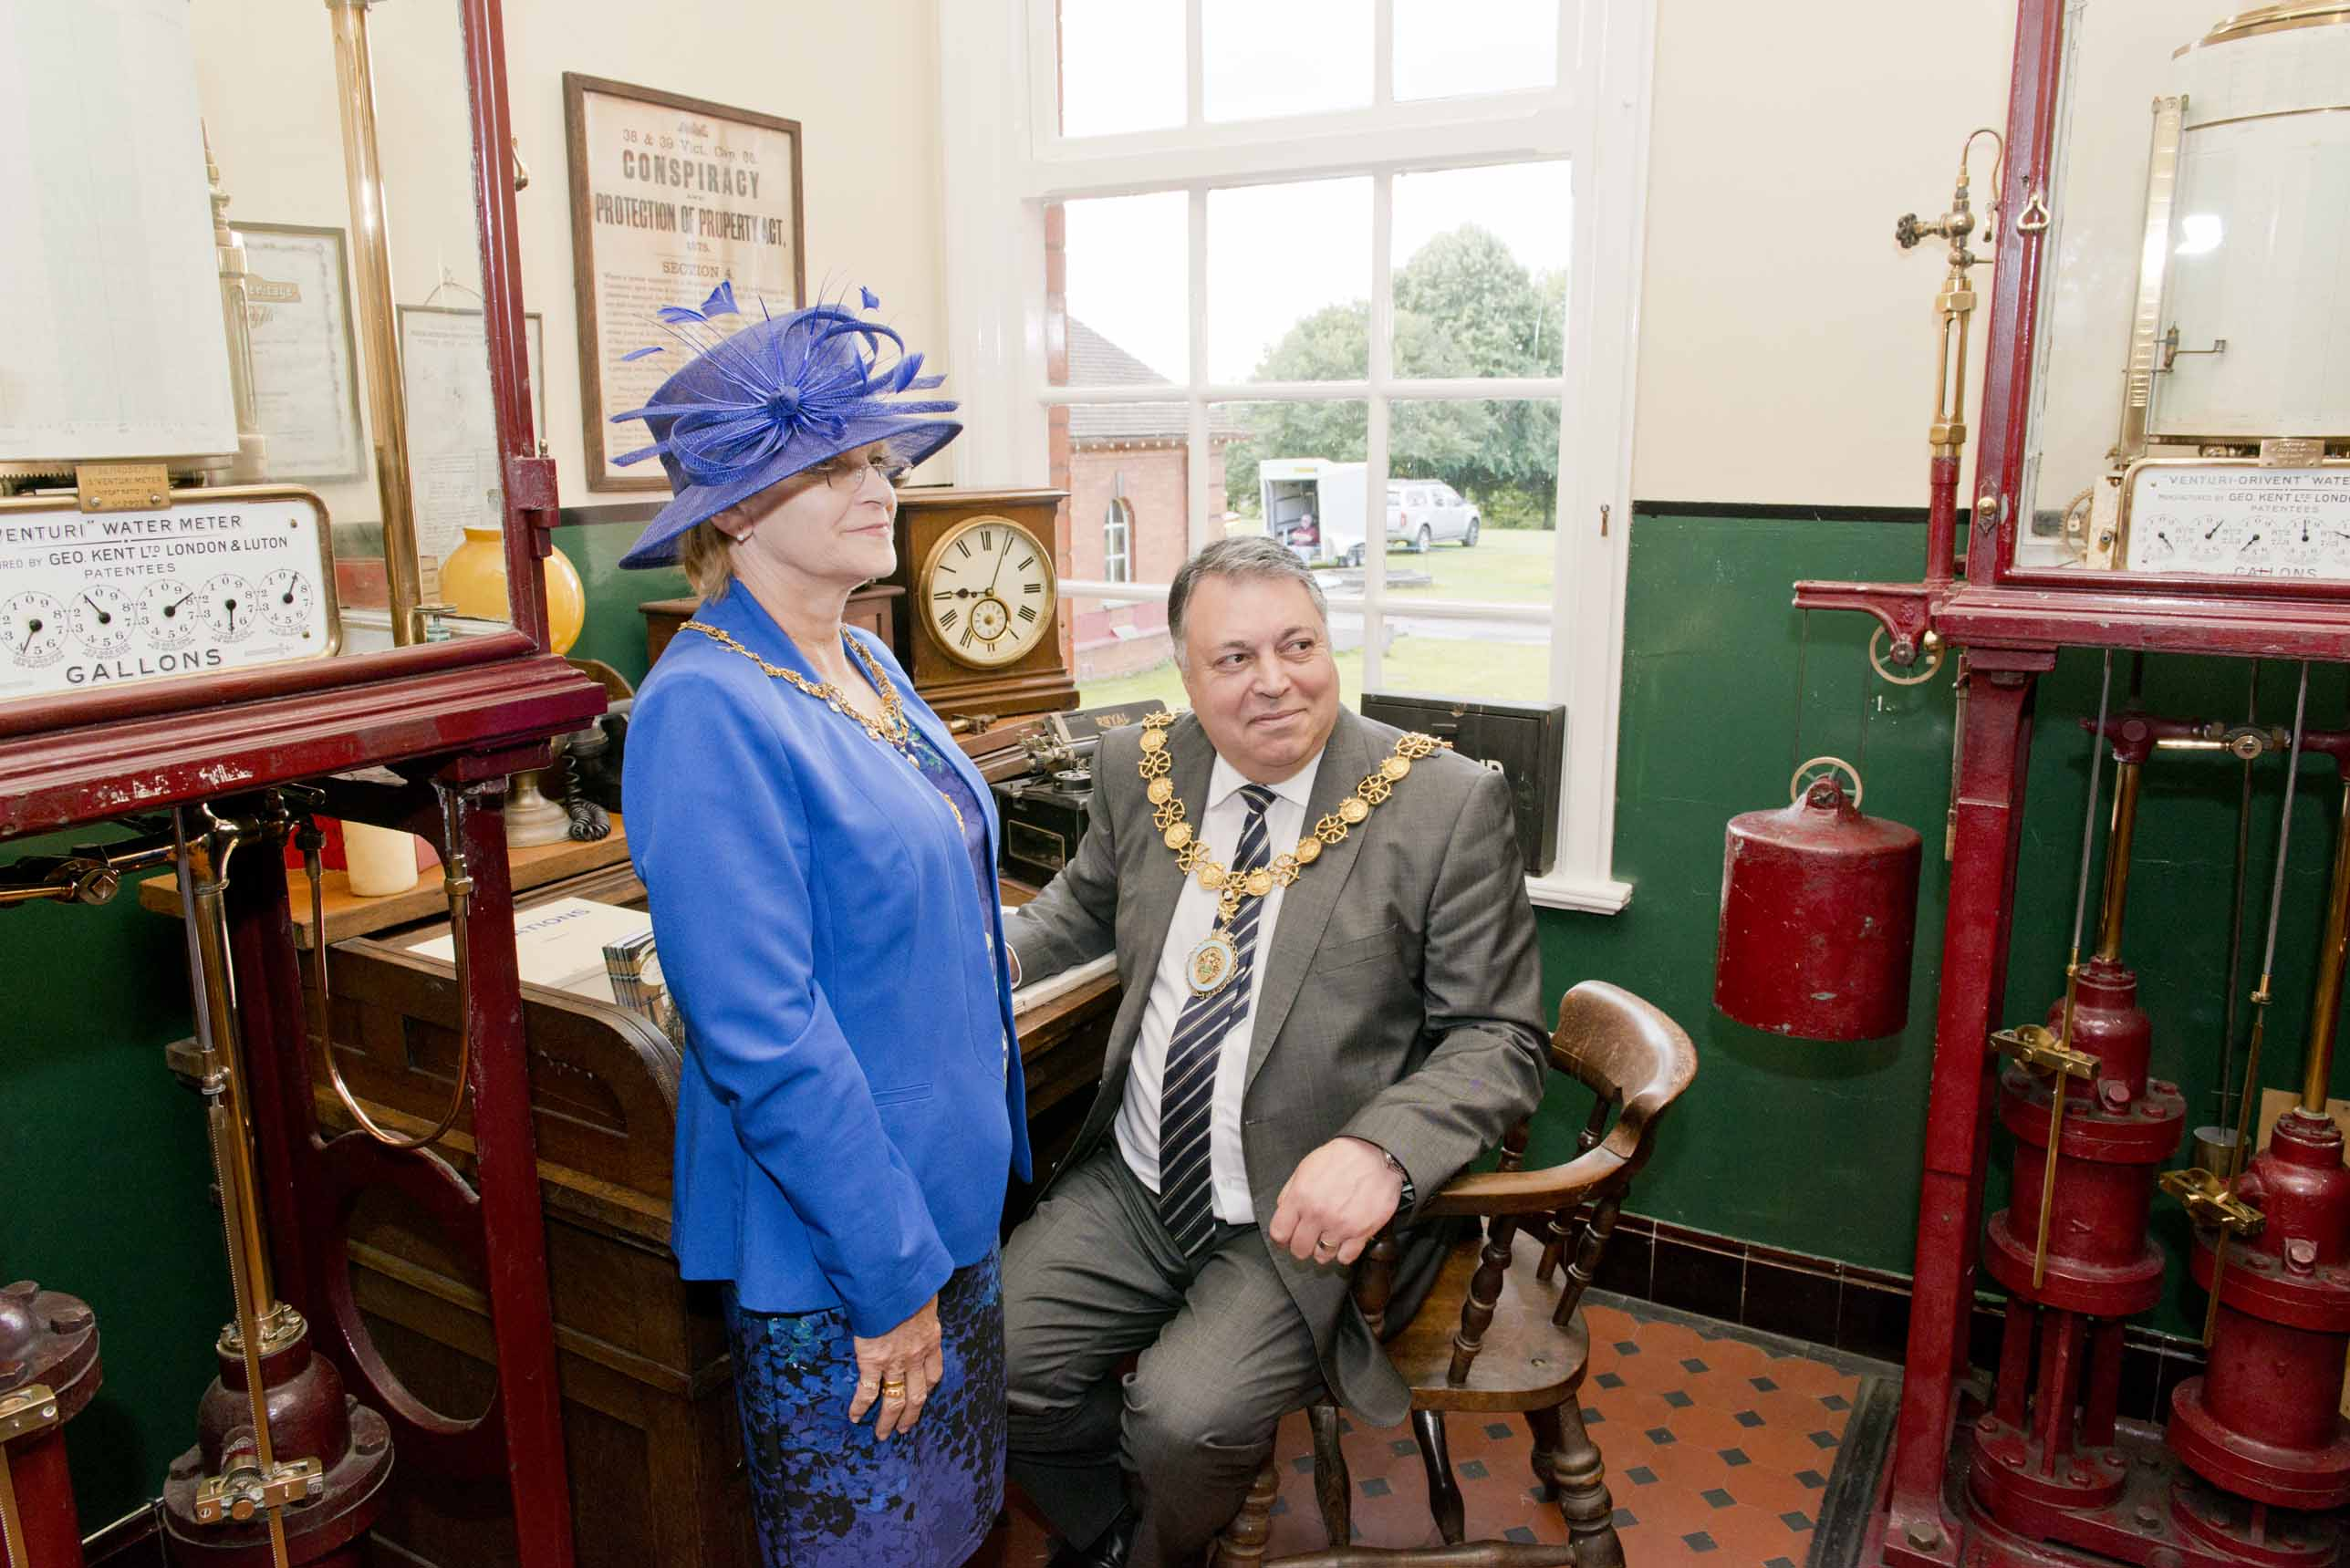 Mayor and Mayoress of Stafford